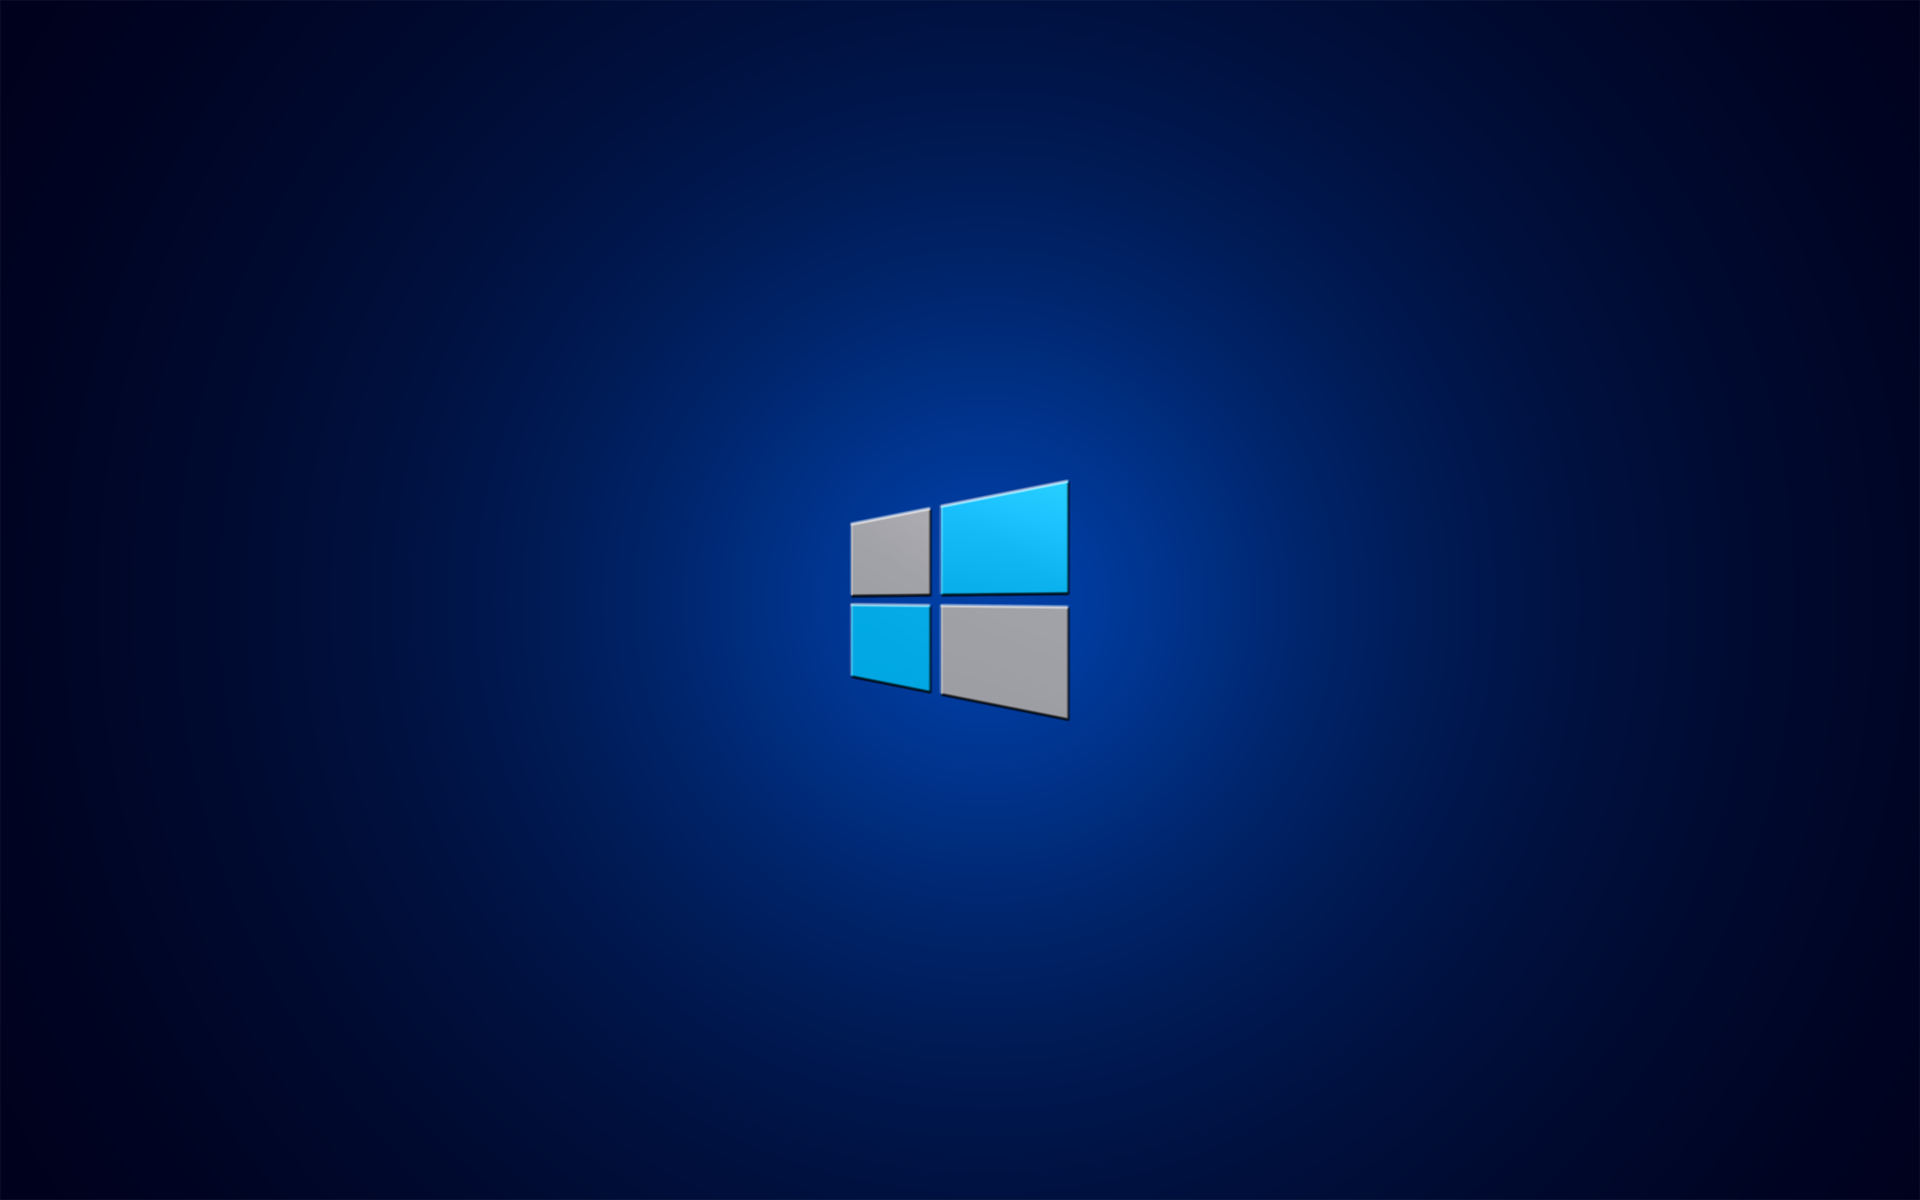 windows 8 dark blue wallpaper | coisas para comprar | pinterest